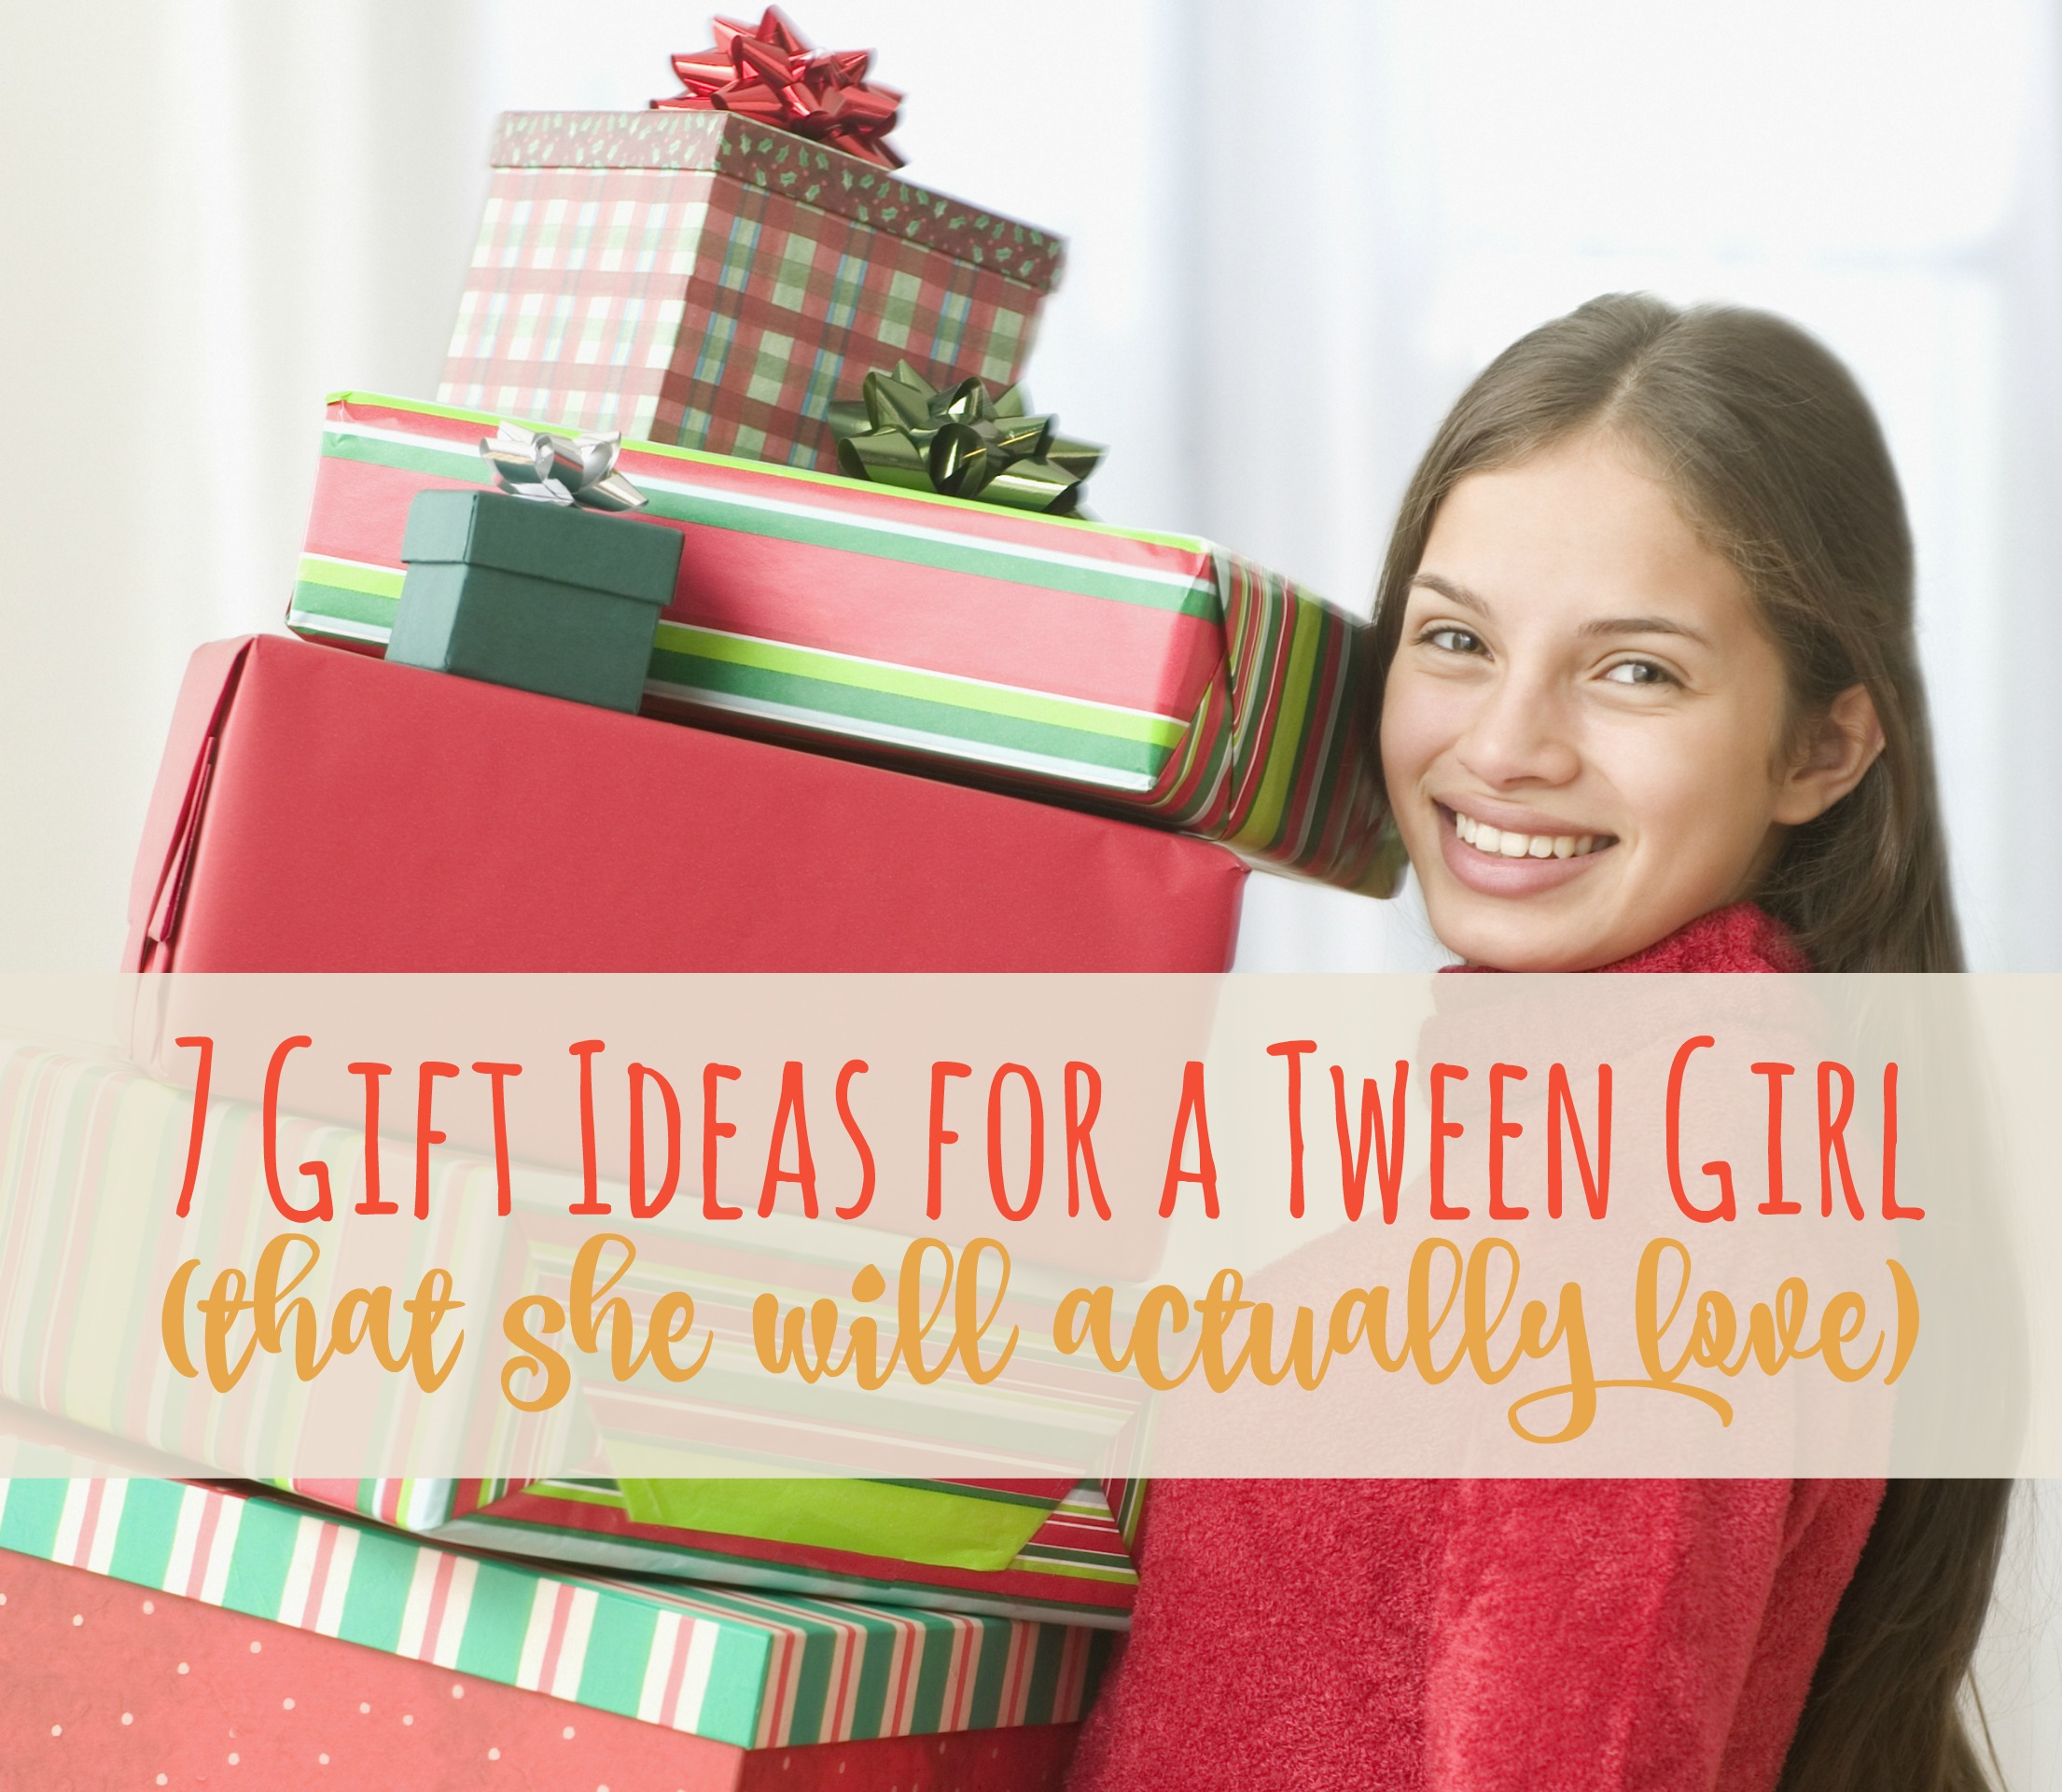 7 Gift Ideas for a Tween Girl that she will actually love